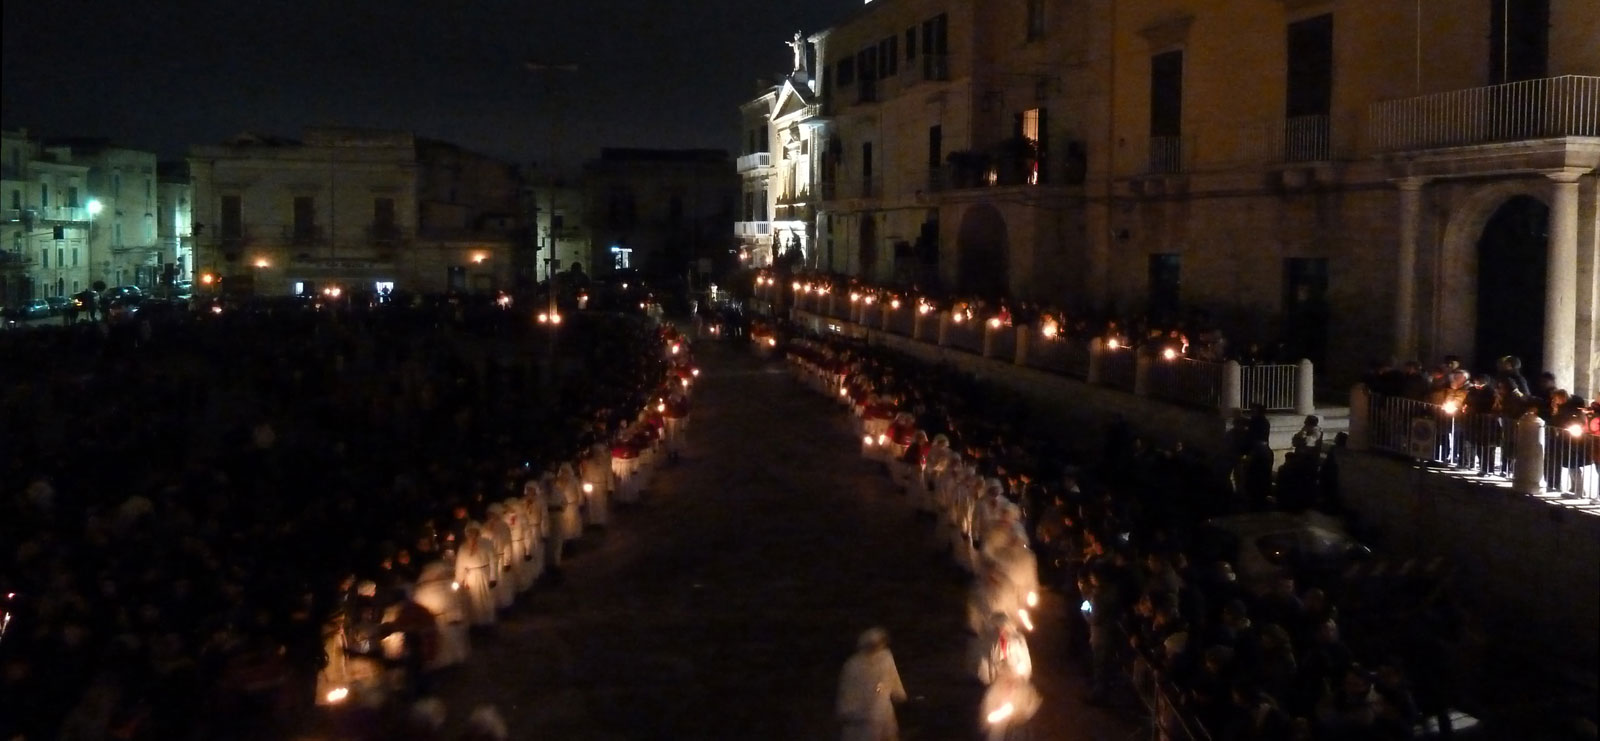 Holy week 2021 in Apulia region